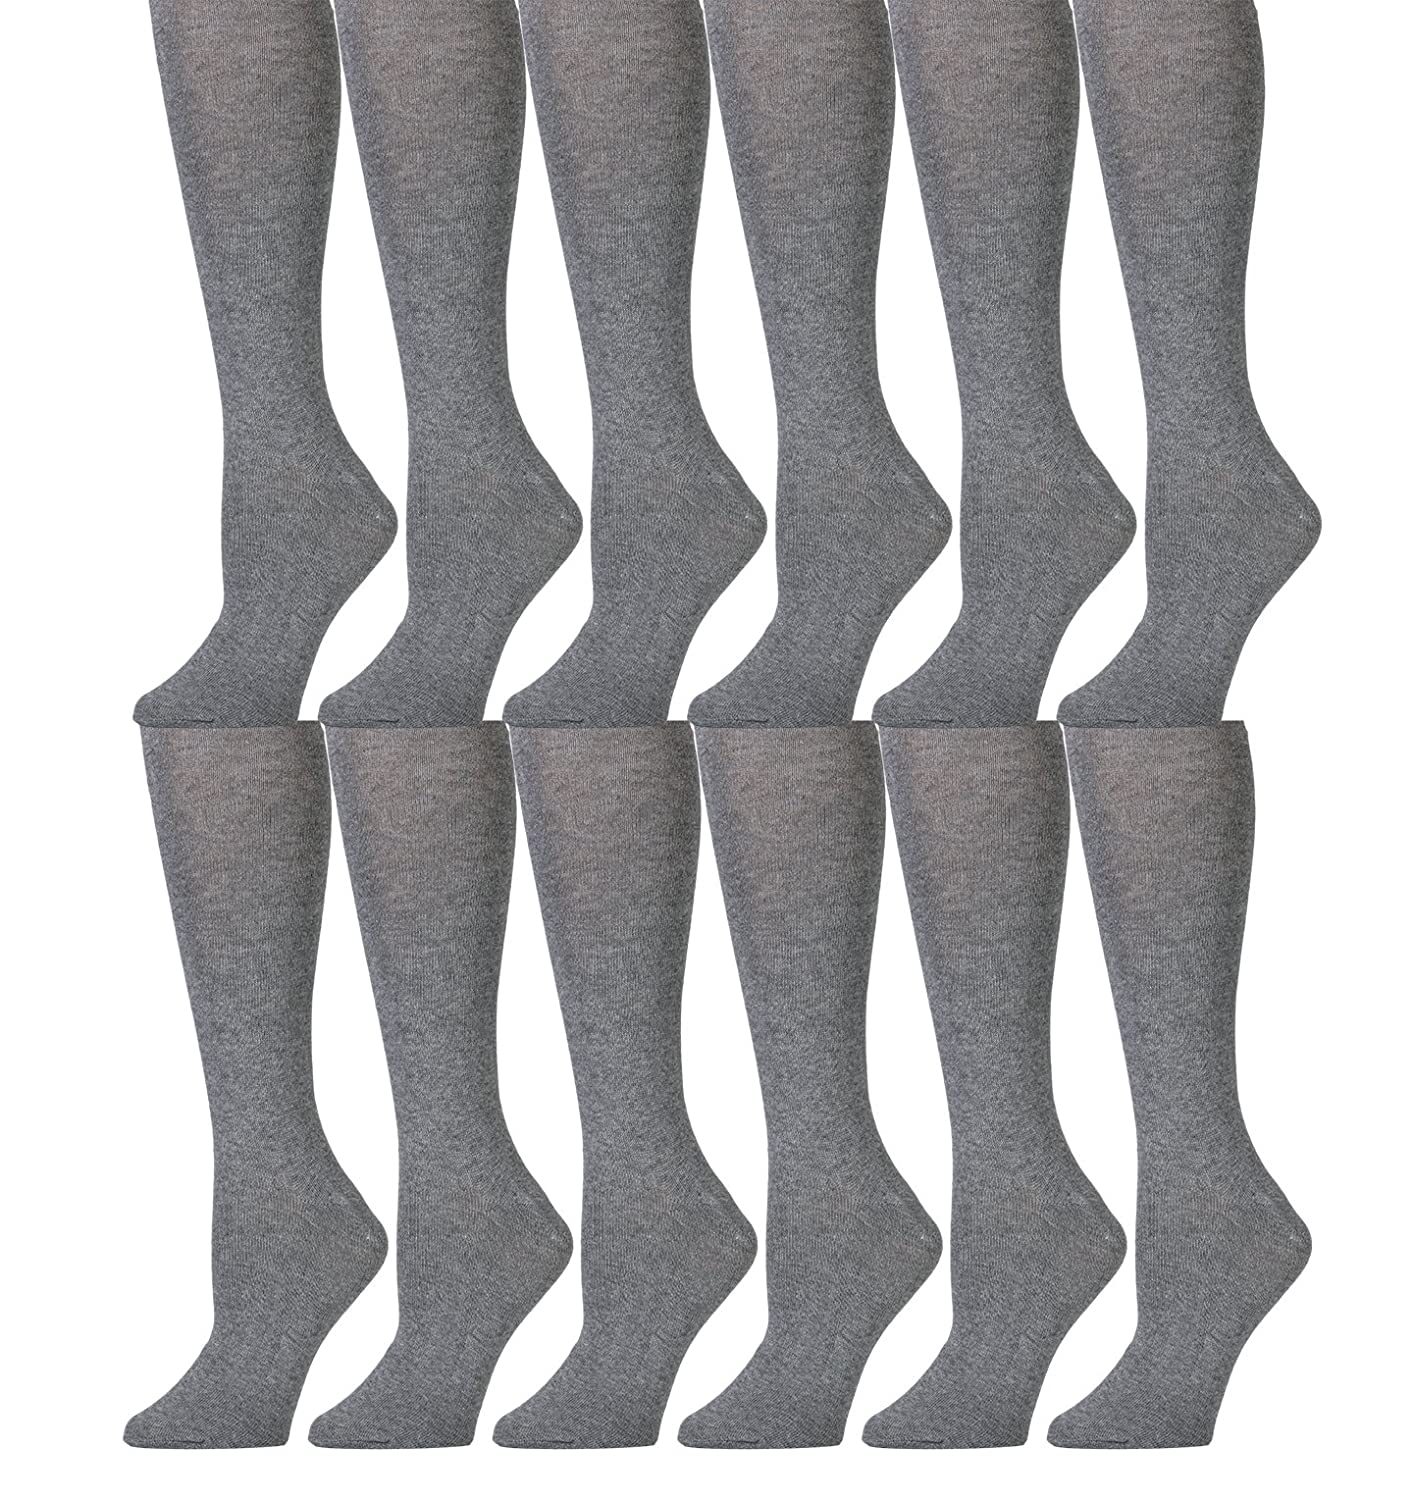 12 Pairs of Girls Colored Knee High Socks, Casual, School Uniform, Travel, by Excell Solid Colors (Navy) 409-6-8-navy-dz